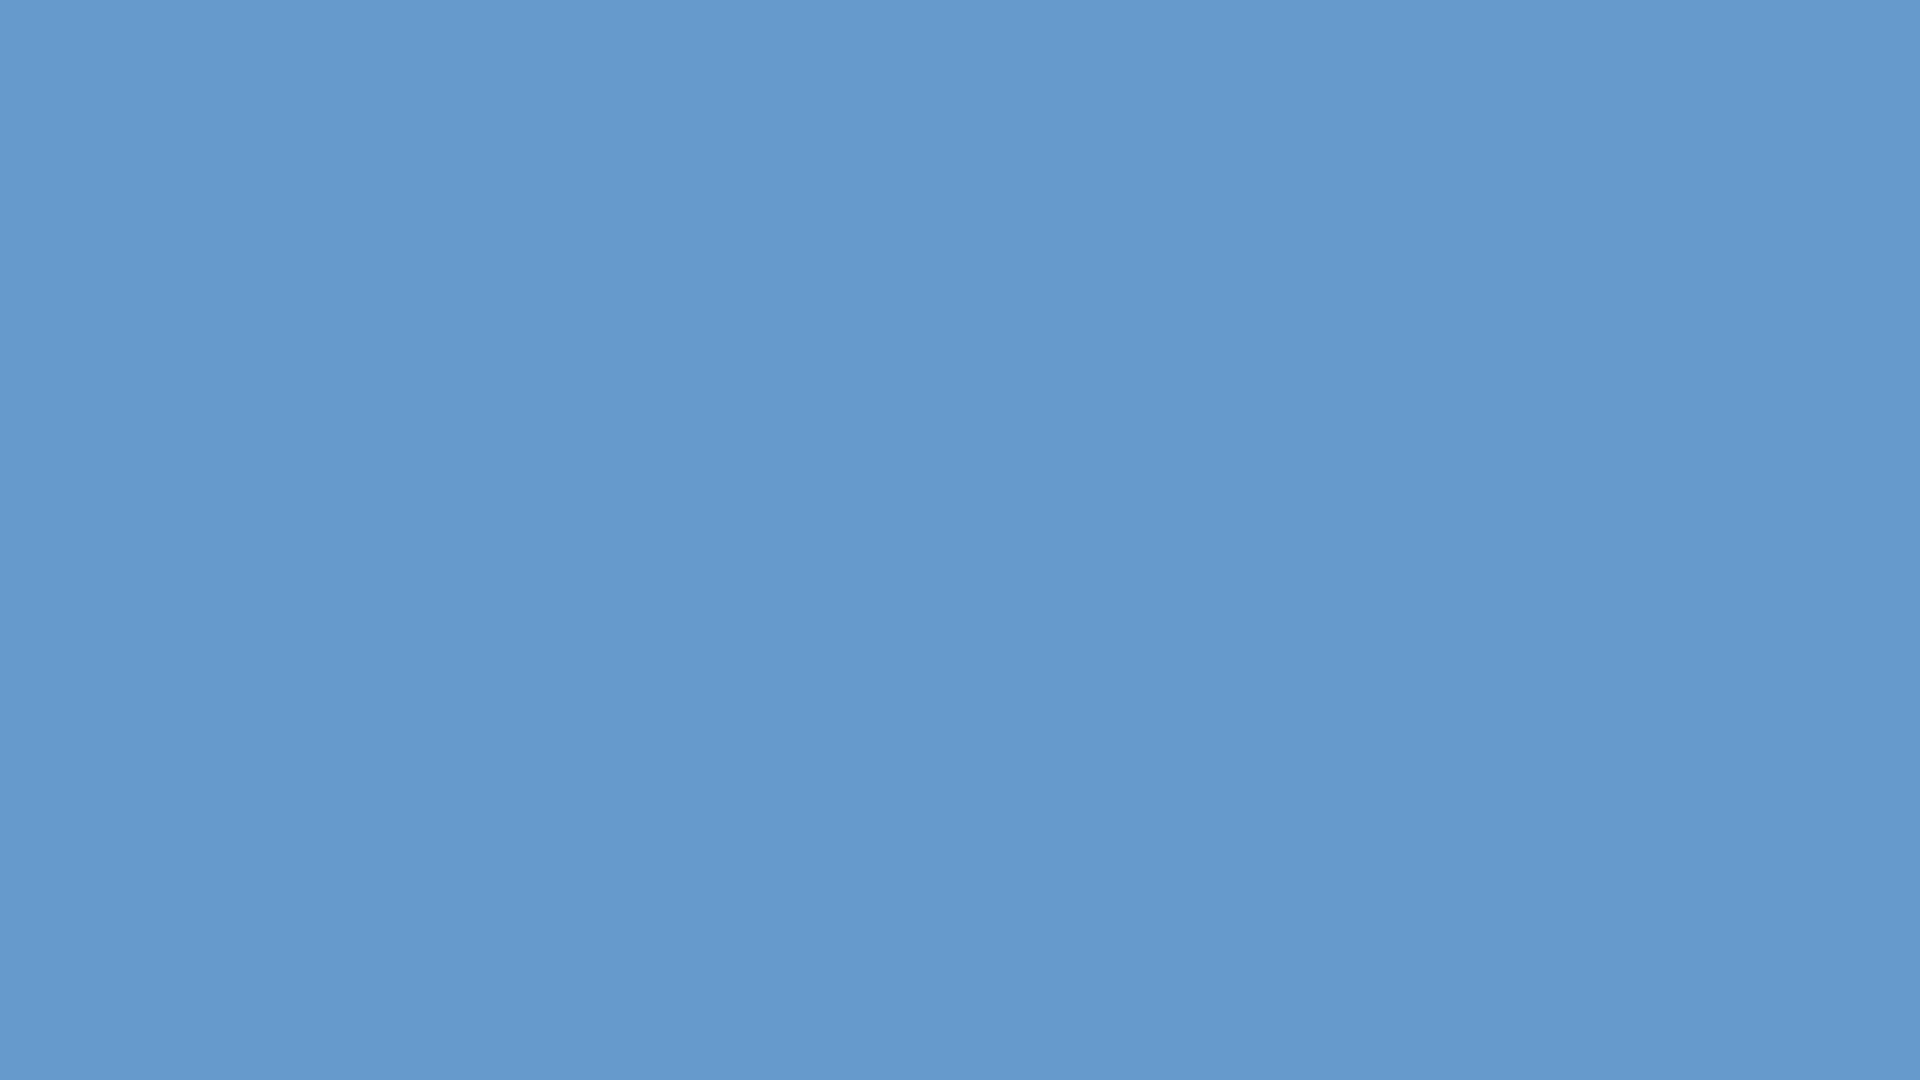 1920x1080 Bluegray Solid Color Background